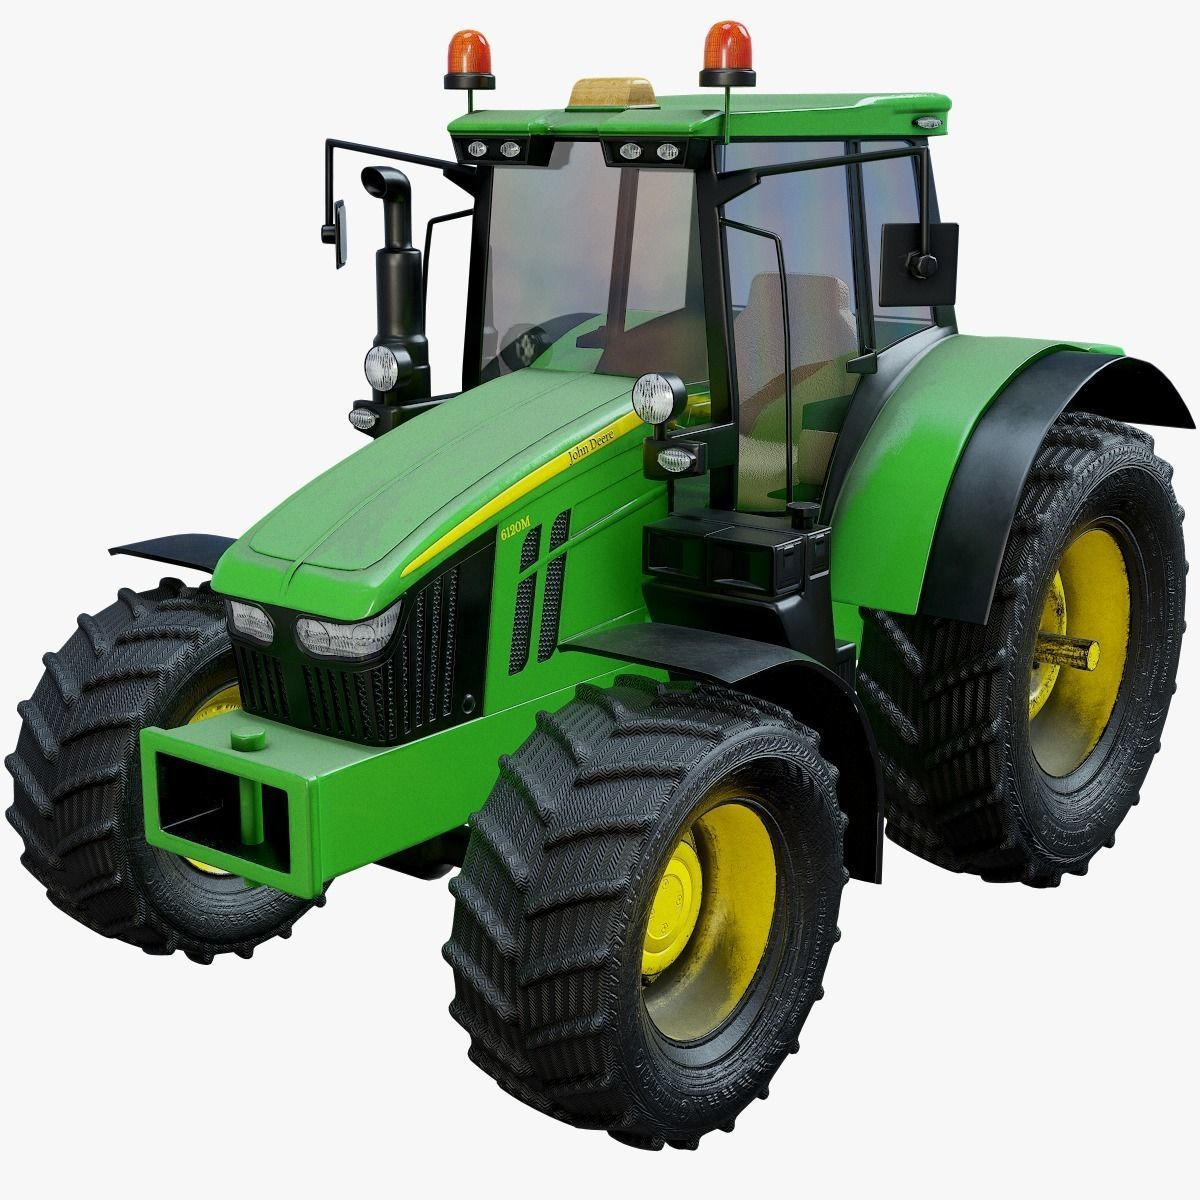 Modern Heavy Agriculture Tractor